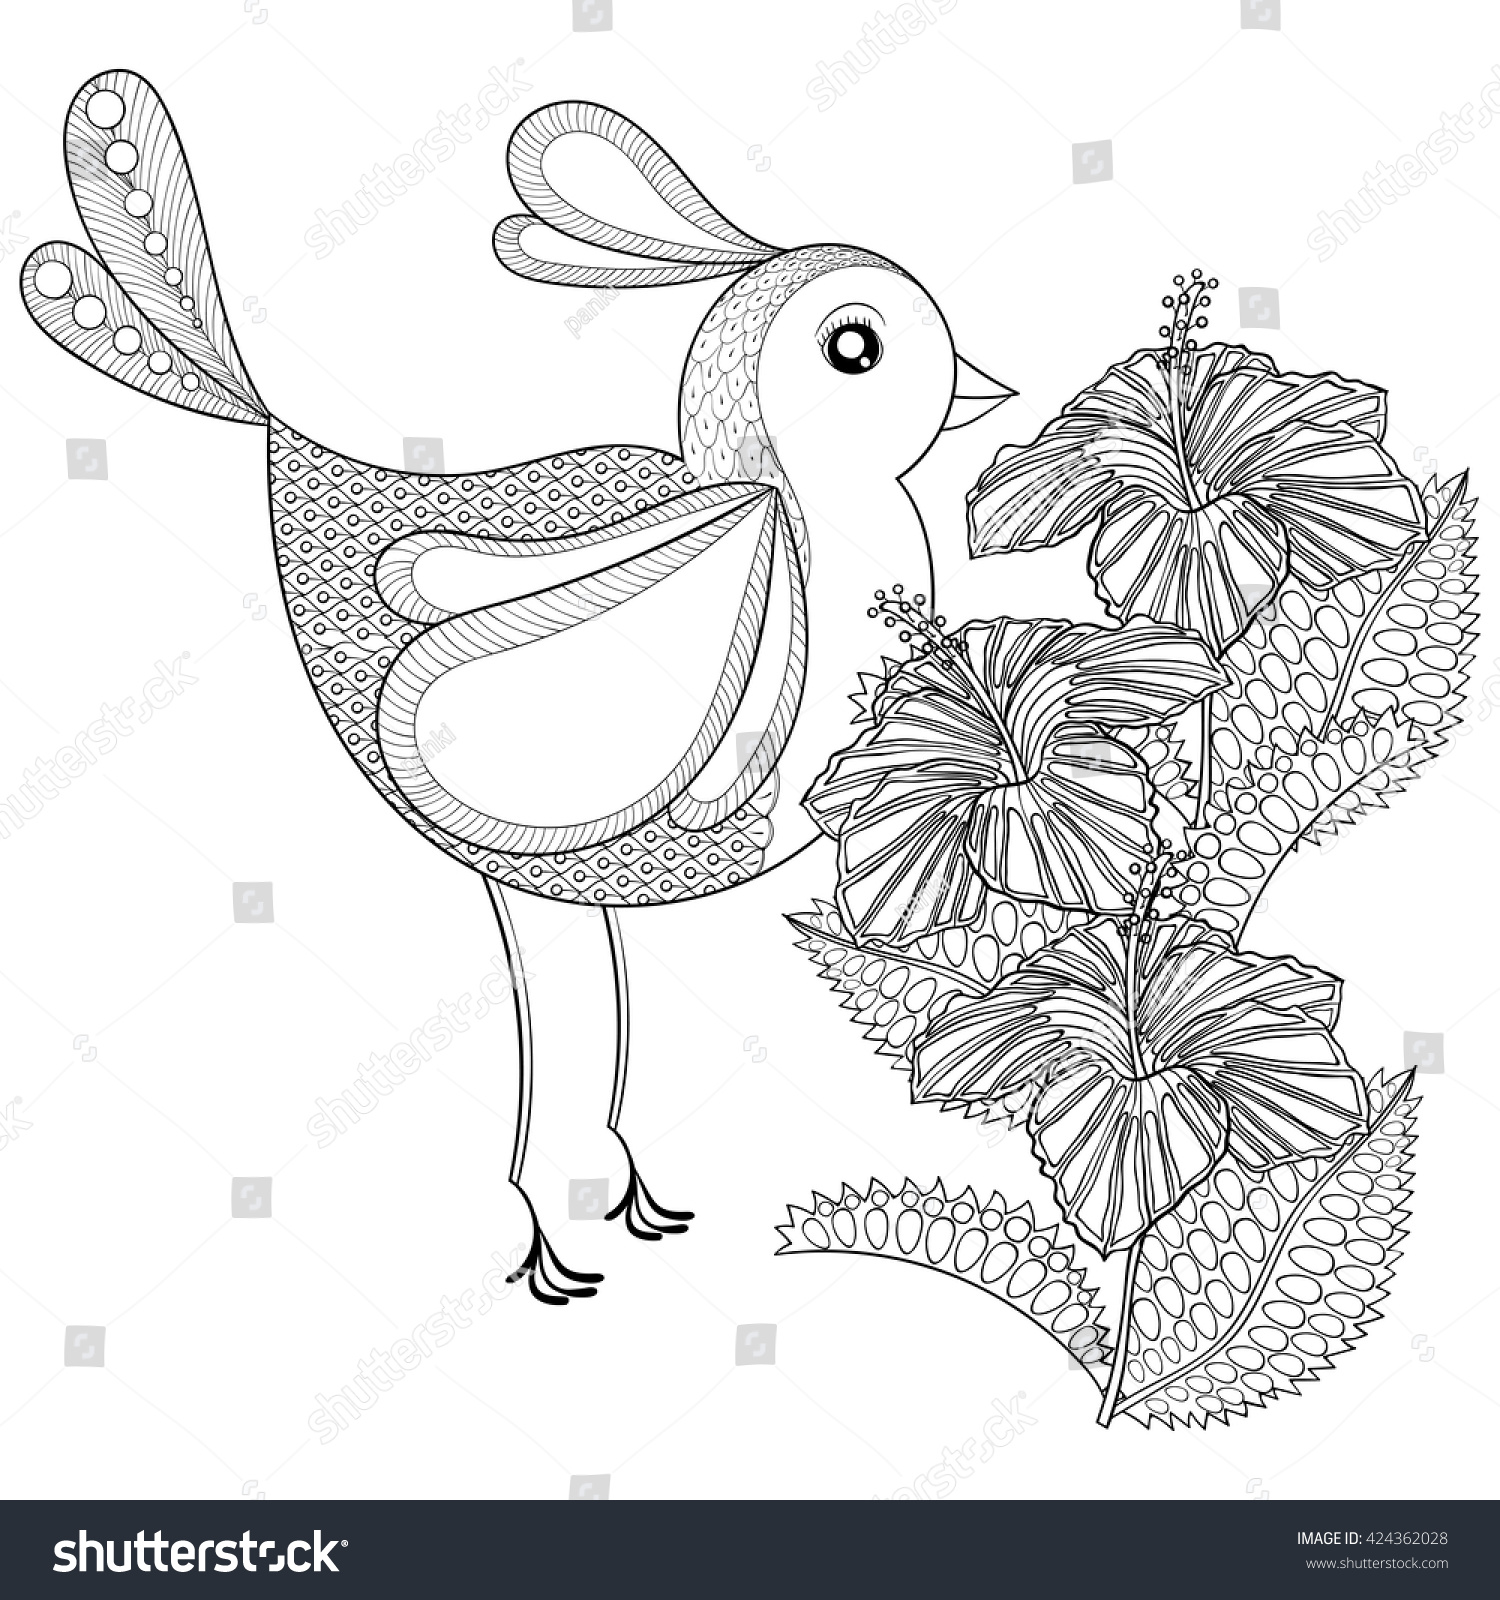 Hand drawn zentangle tribal exotic bird stock vector royalty free hand drawn zentangle tribal exotic bird and hibiscus flower for adult anti stress coloring pages izmirmasajfo